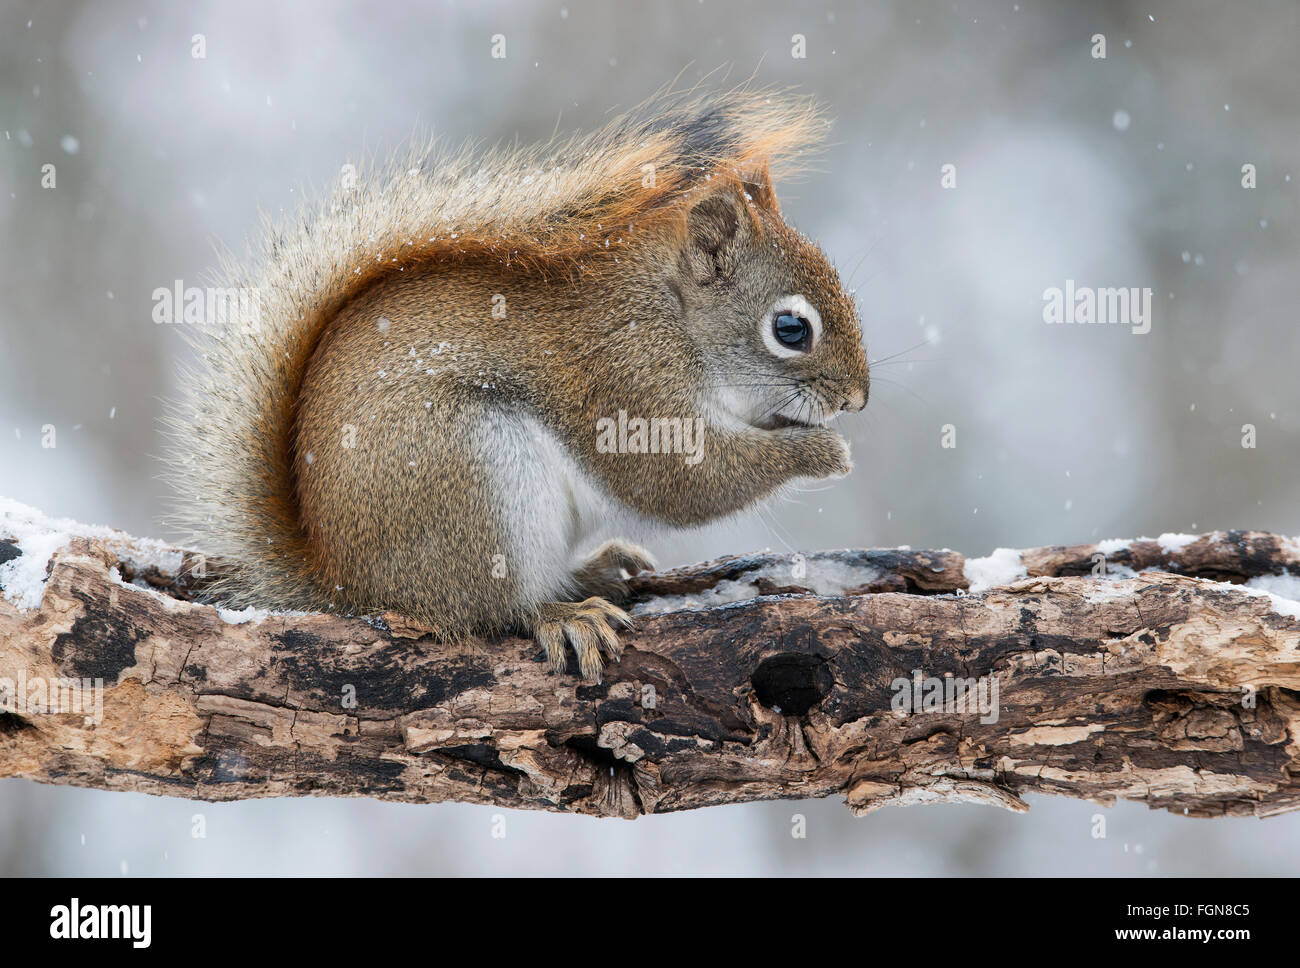 Eastern Red Squirrel eating an acorn (Tamiasciurus or Sciurus hudsonicus), Winter, E North America - Stock Image